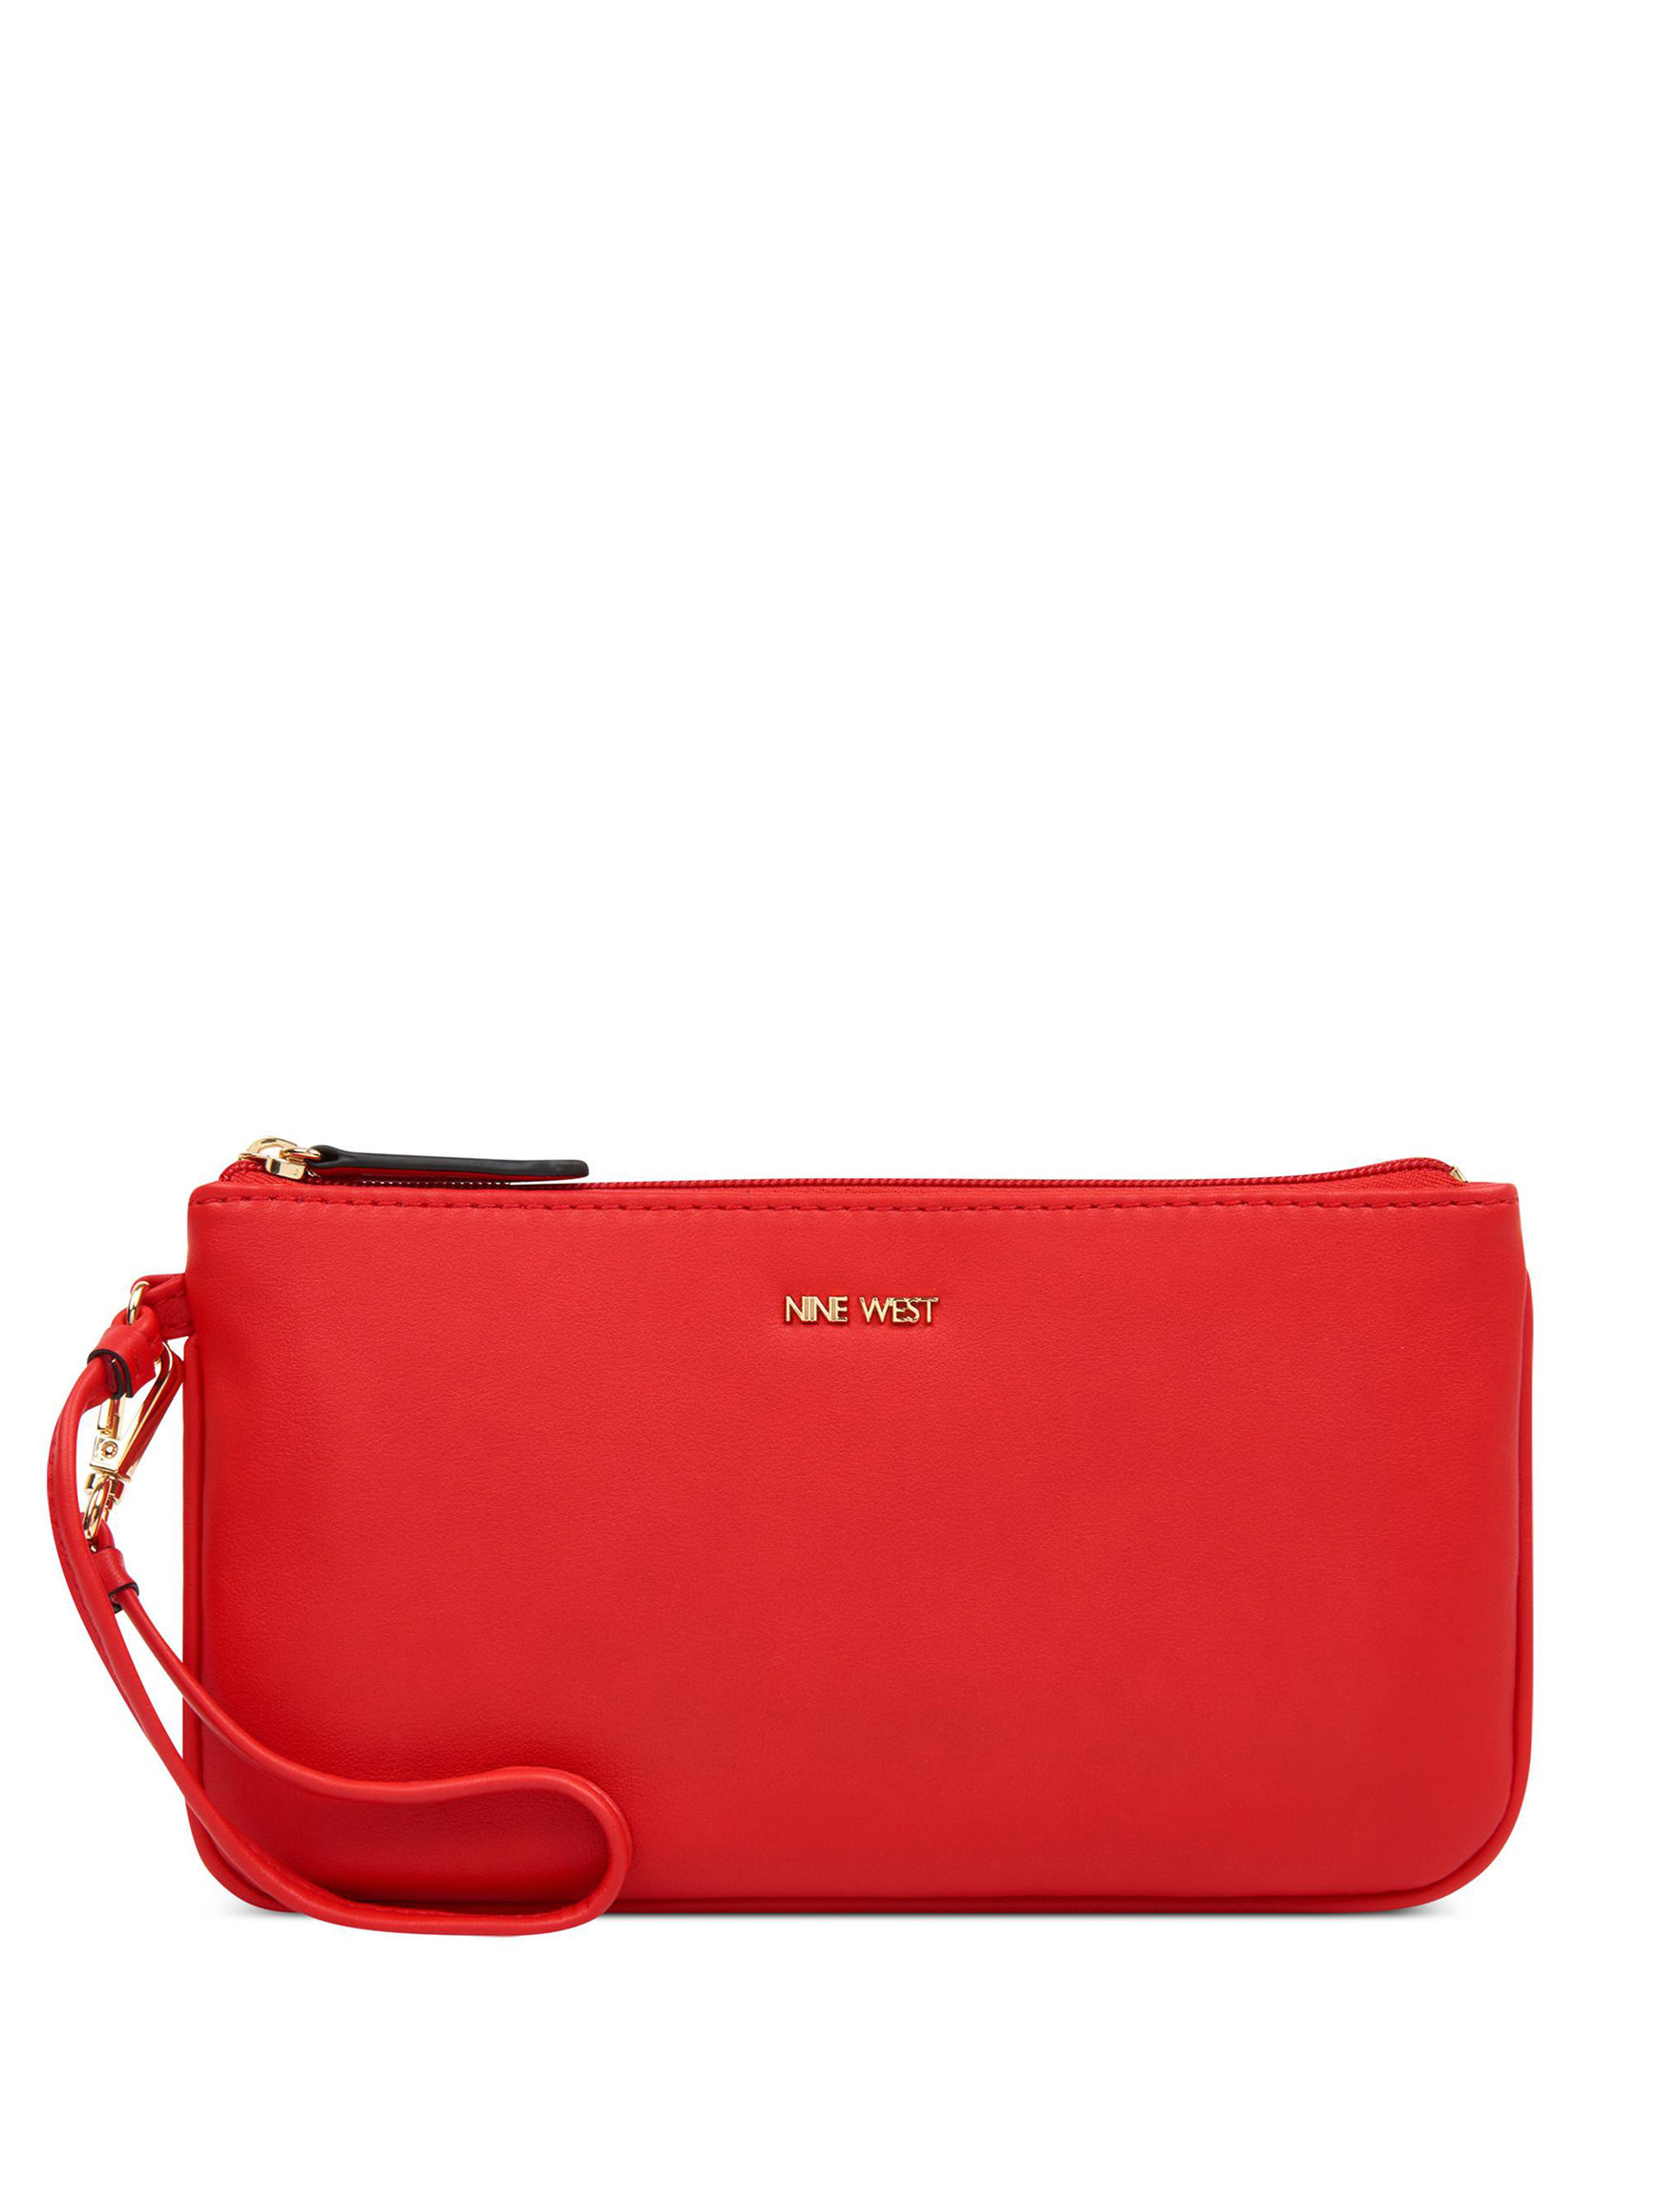 Nine West Fiery Red